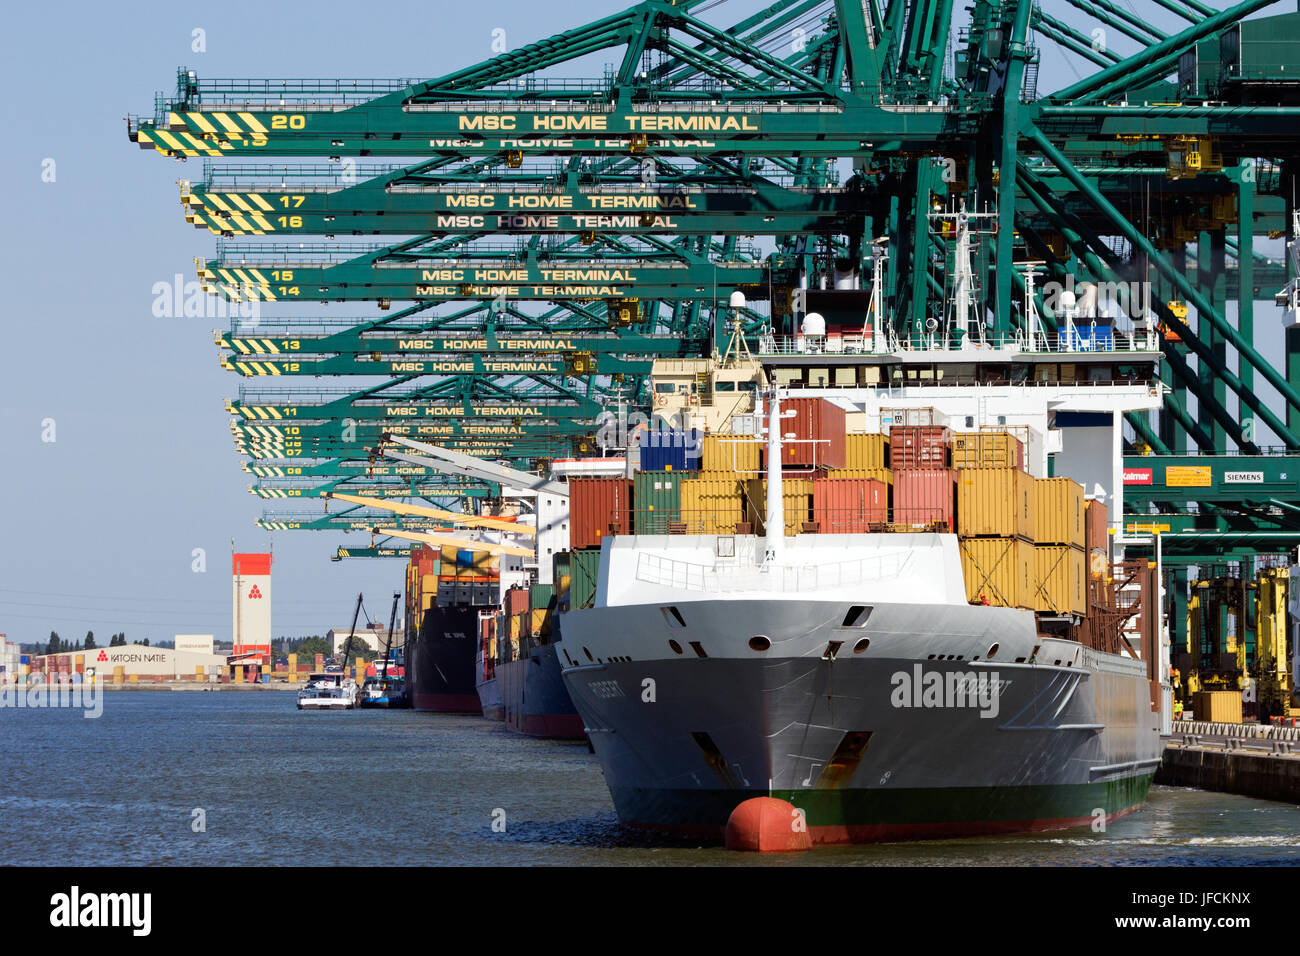 ANTWERP, BELGIUM - JULY 9: Container ship leaving MSC Home terminal July 9,2013 in Antwerp, Belgium. MSC Home terminal - Stock Image